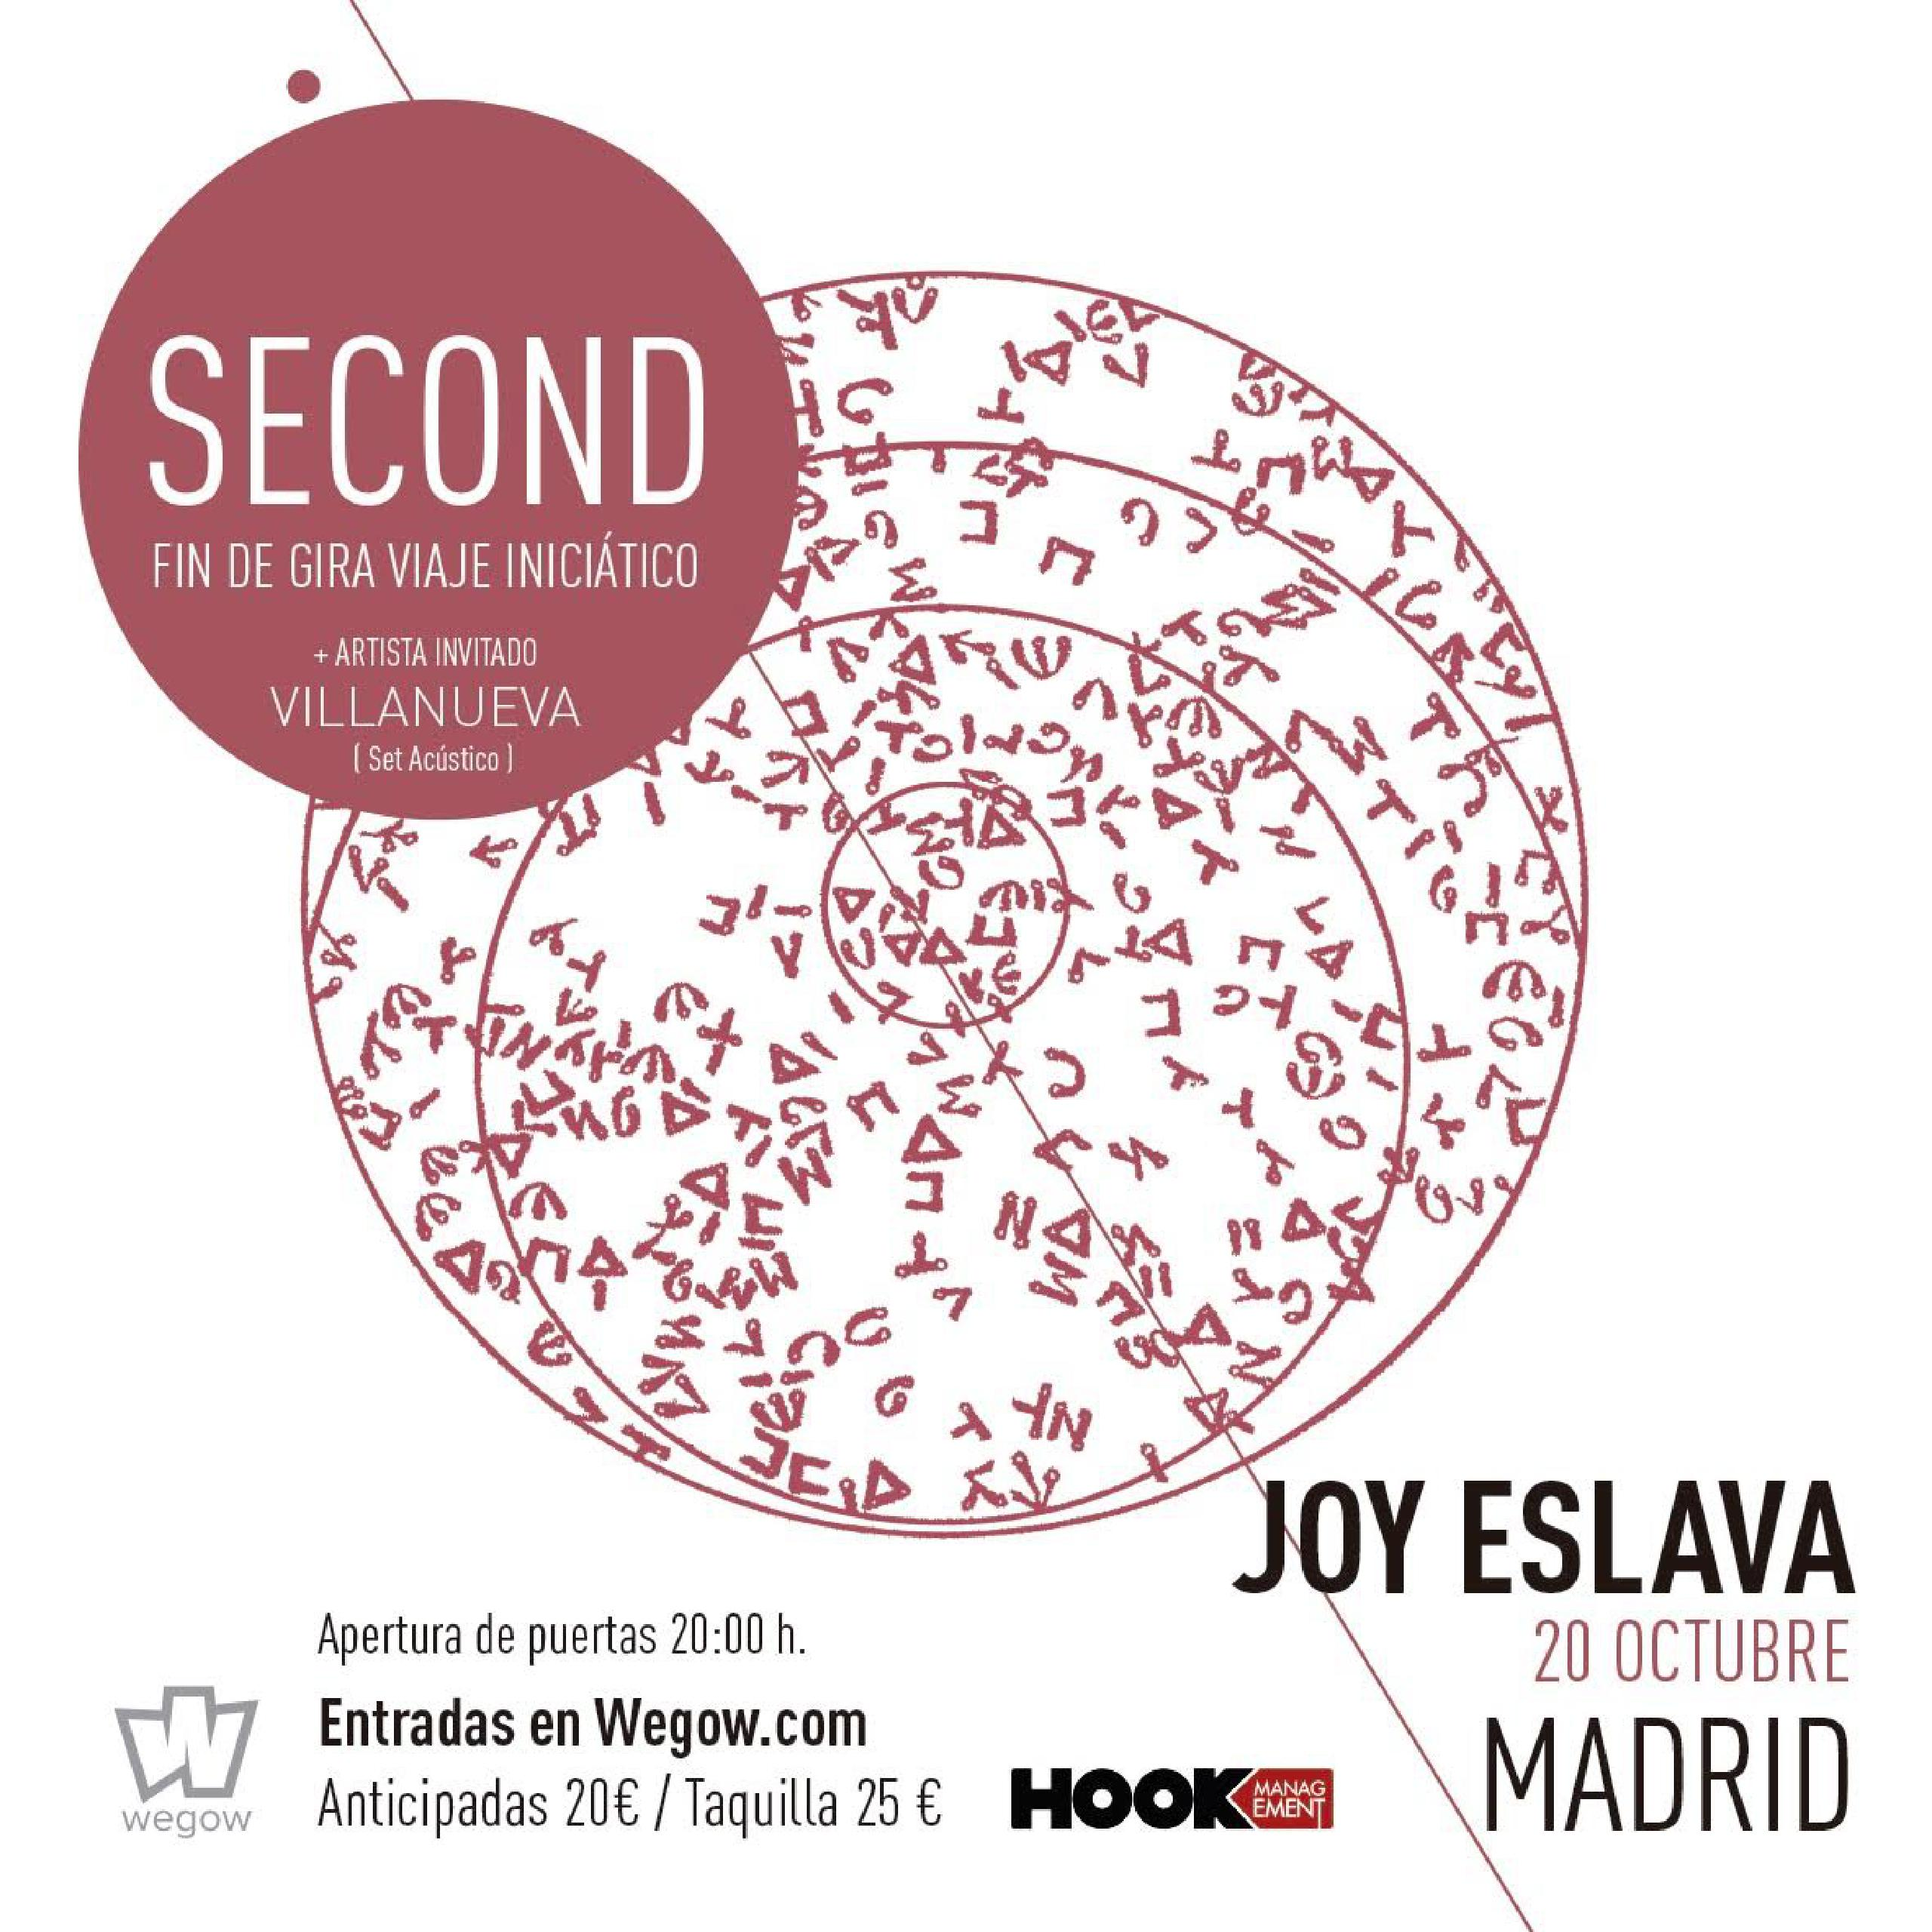 Second en Madrid